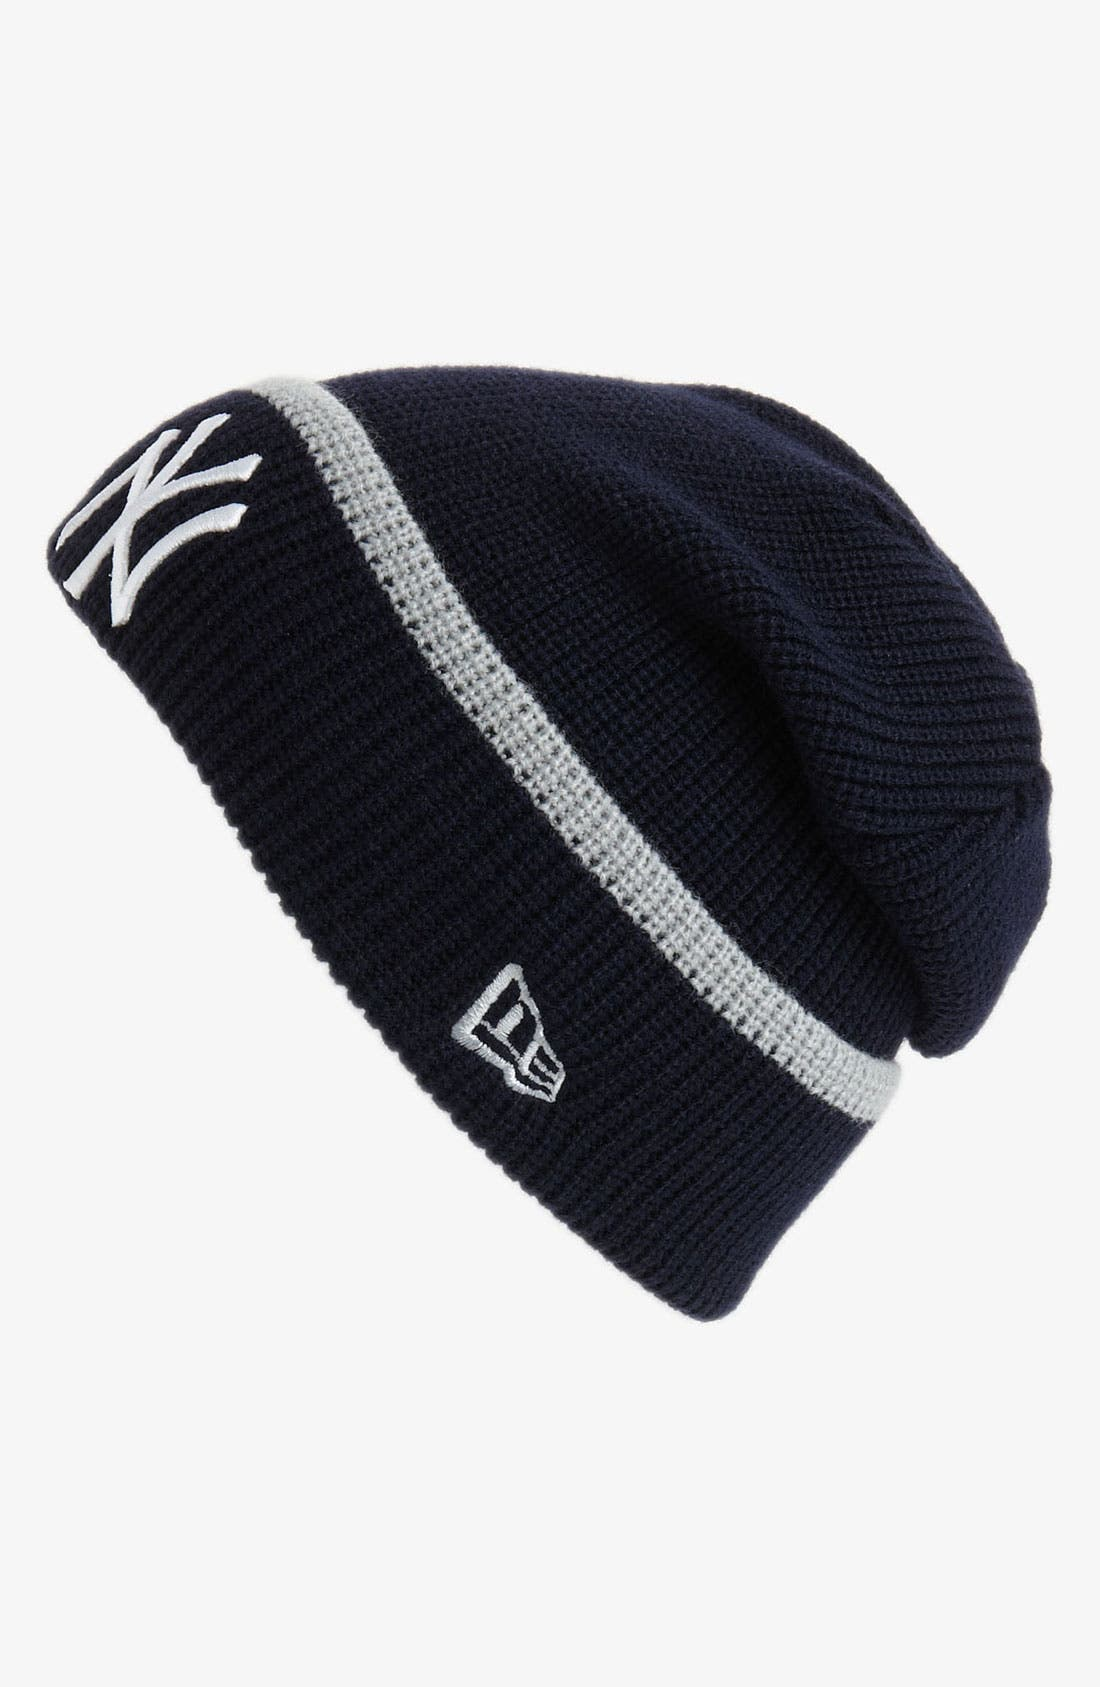 Alternate Image 1 Selected - New Era Cap 'New York Yankees' Pop-Cuff Knit Beanie